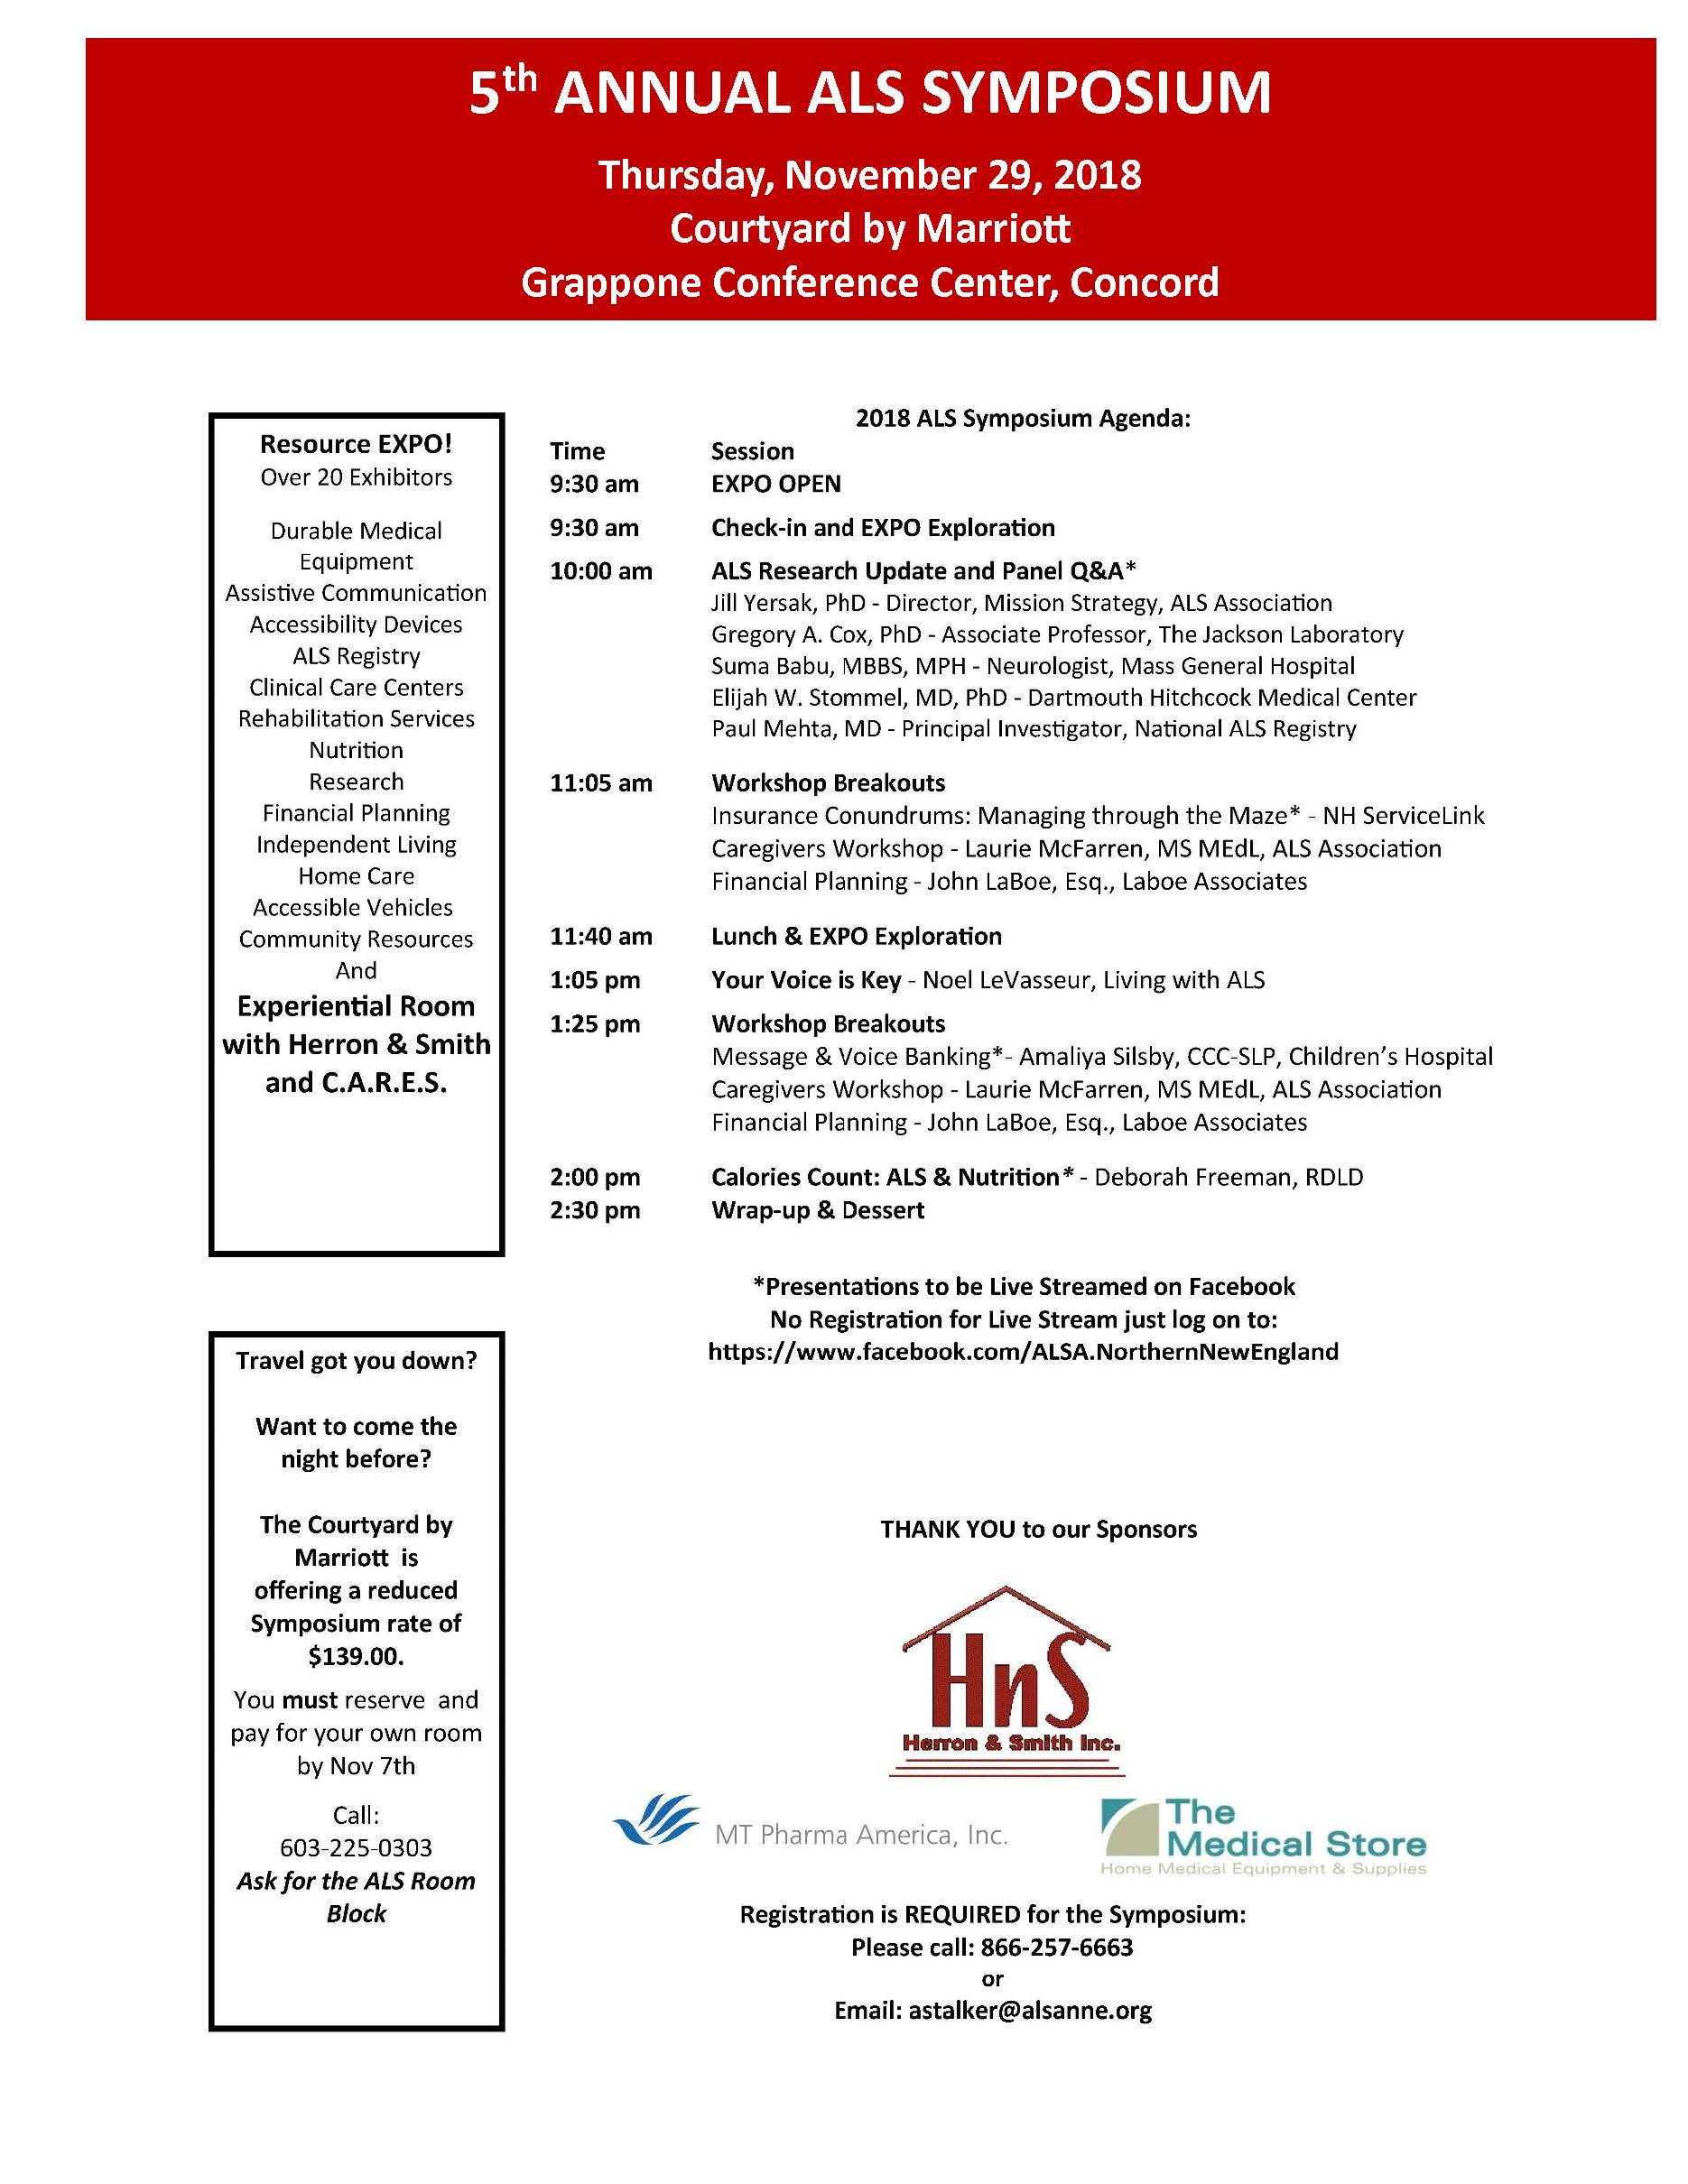 5th Annual ALS Symposium